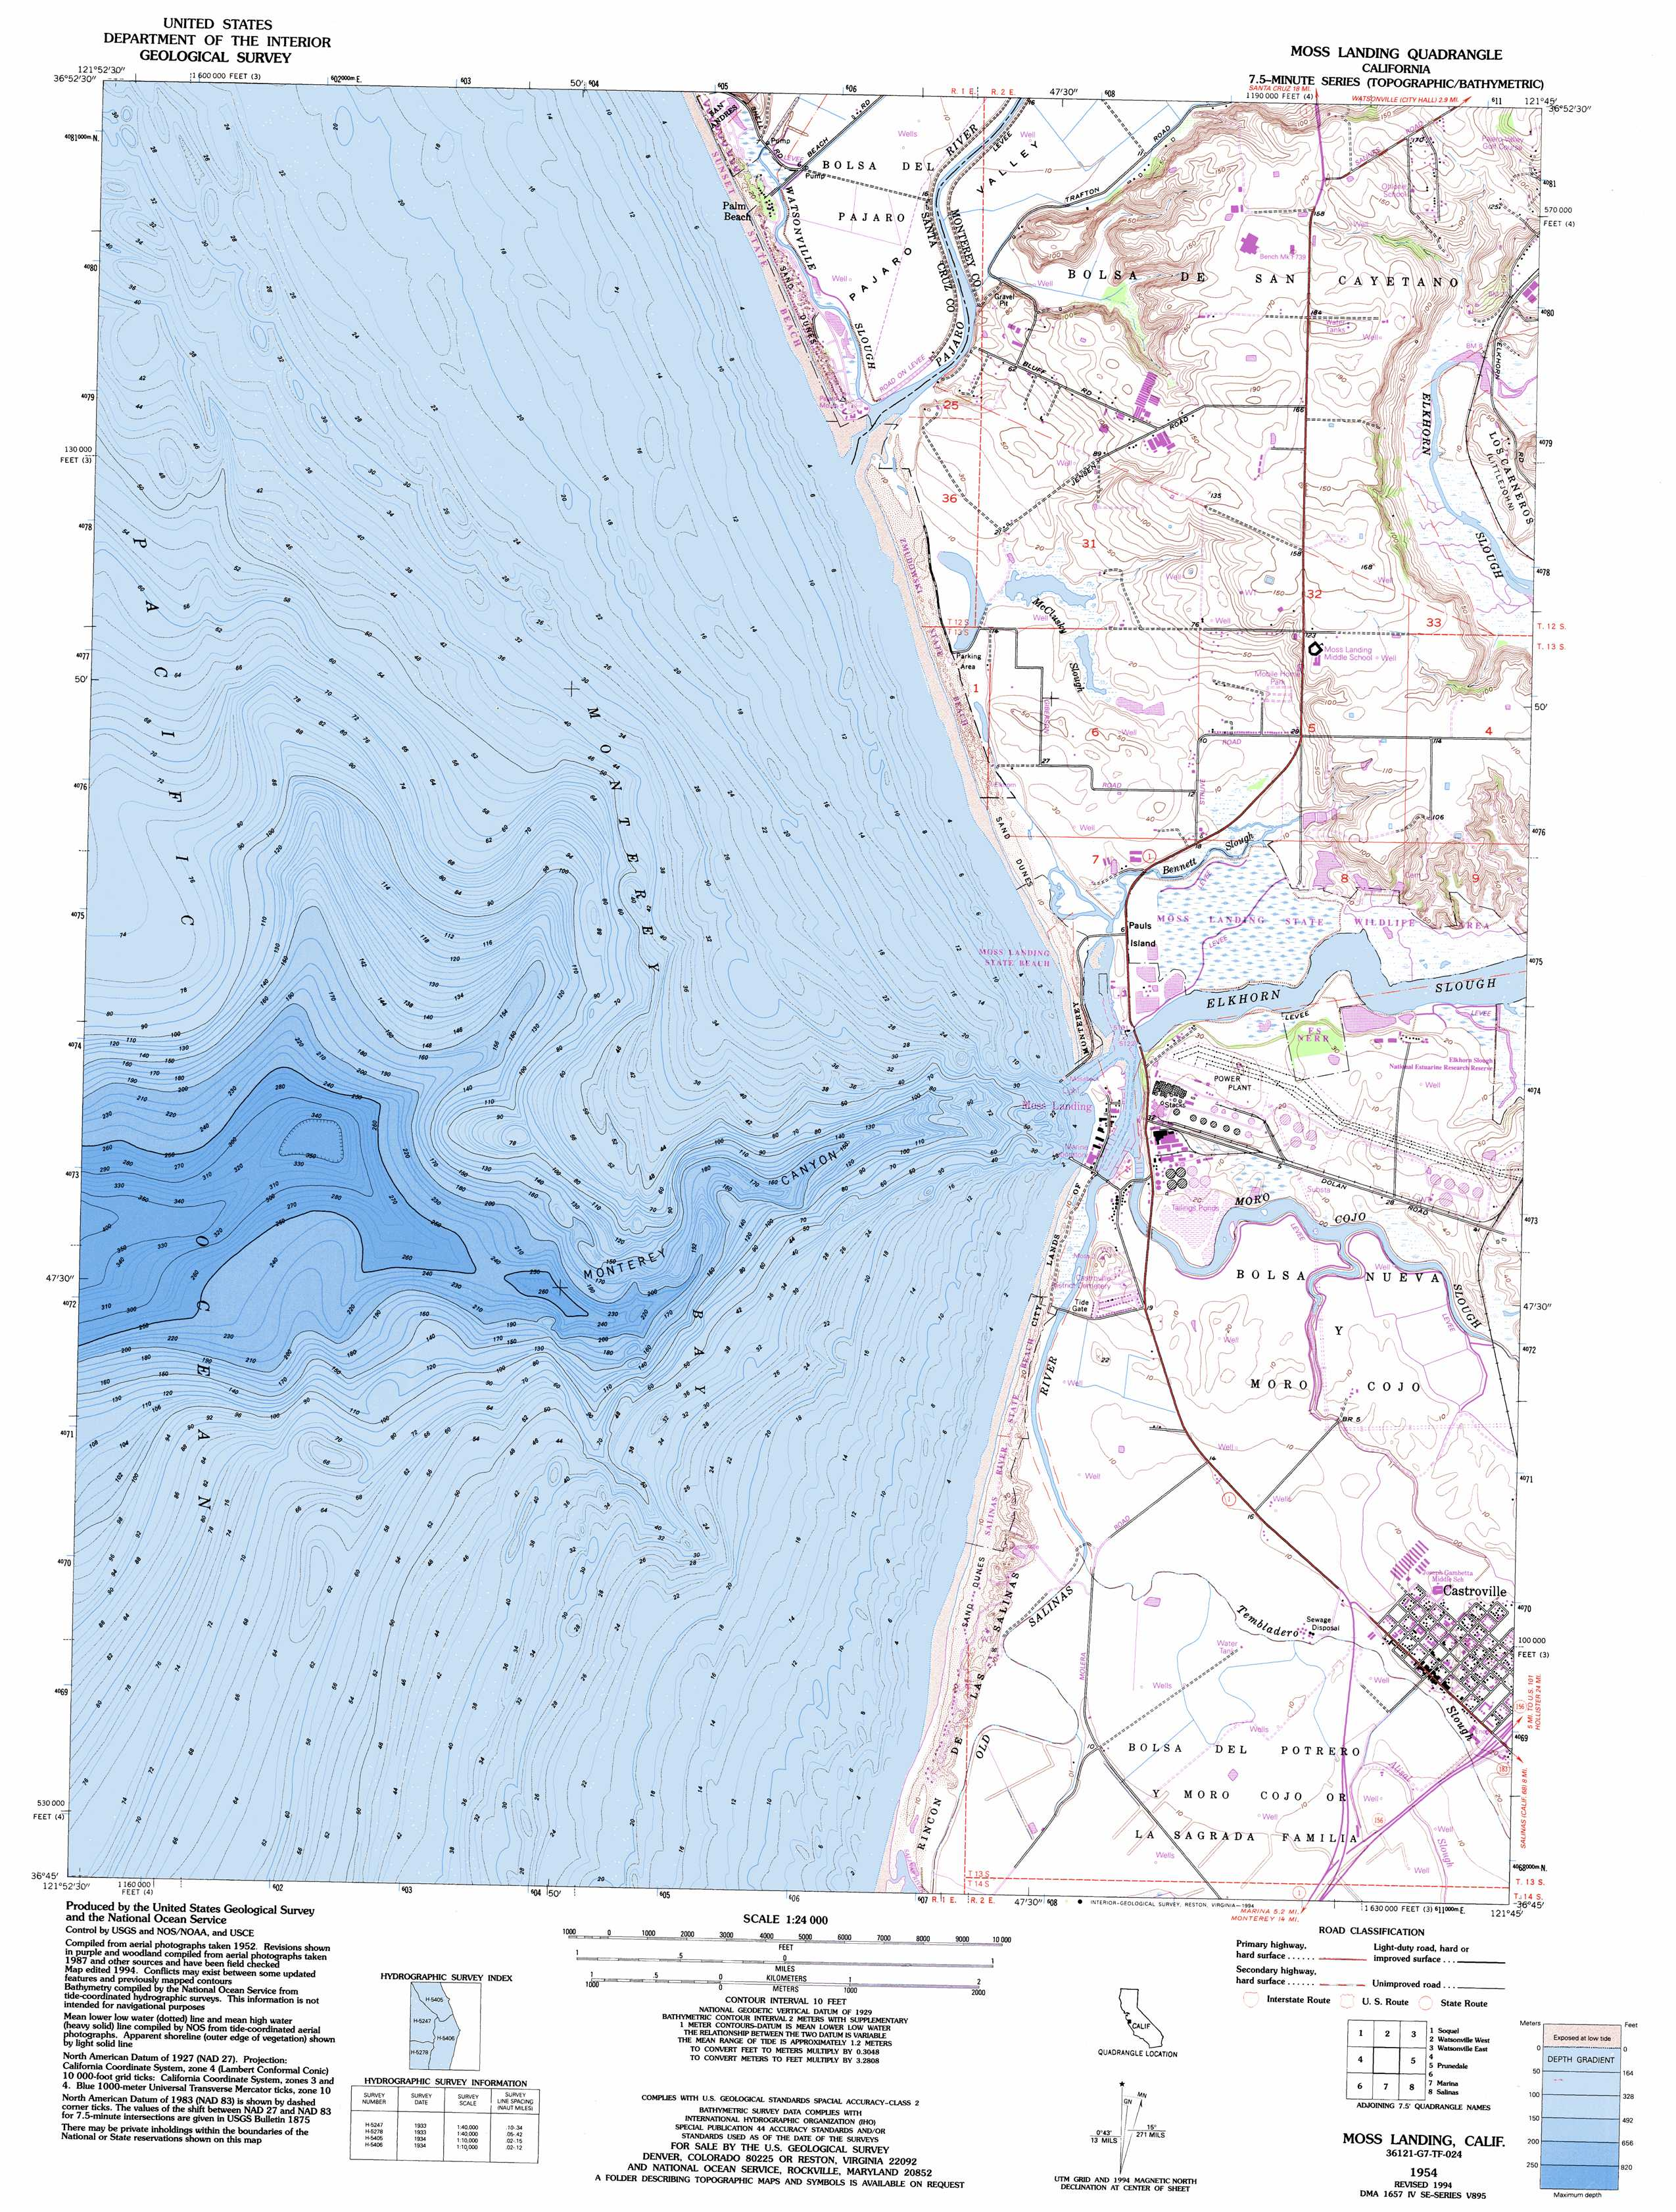 Moss Landing Topographic Map CA USGS Topo Quad G - Us geological survey topographic maps for sale